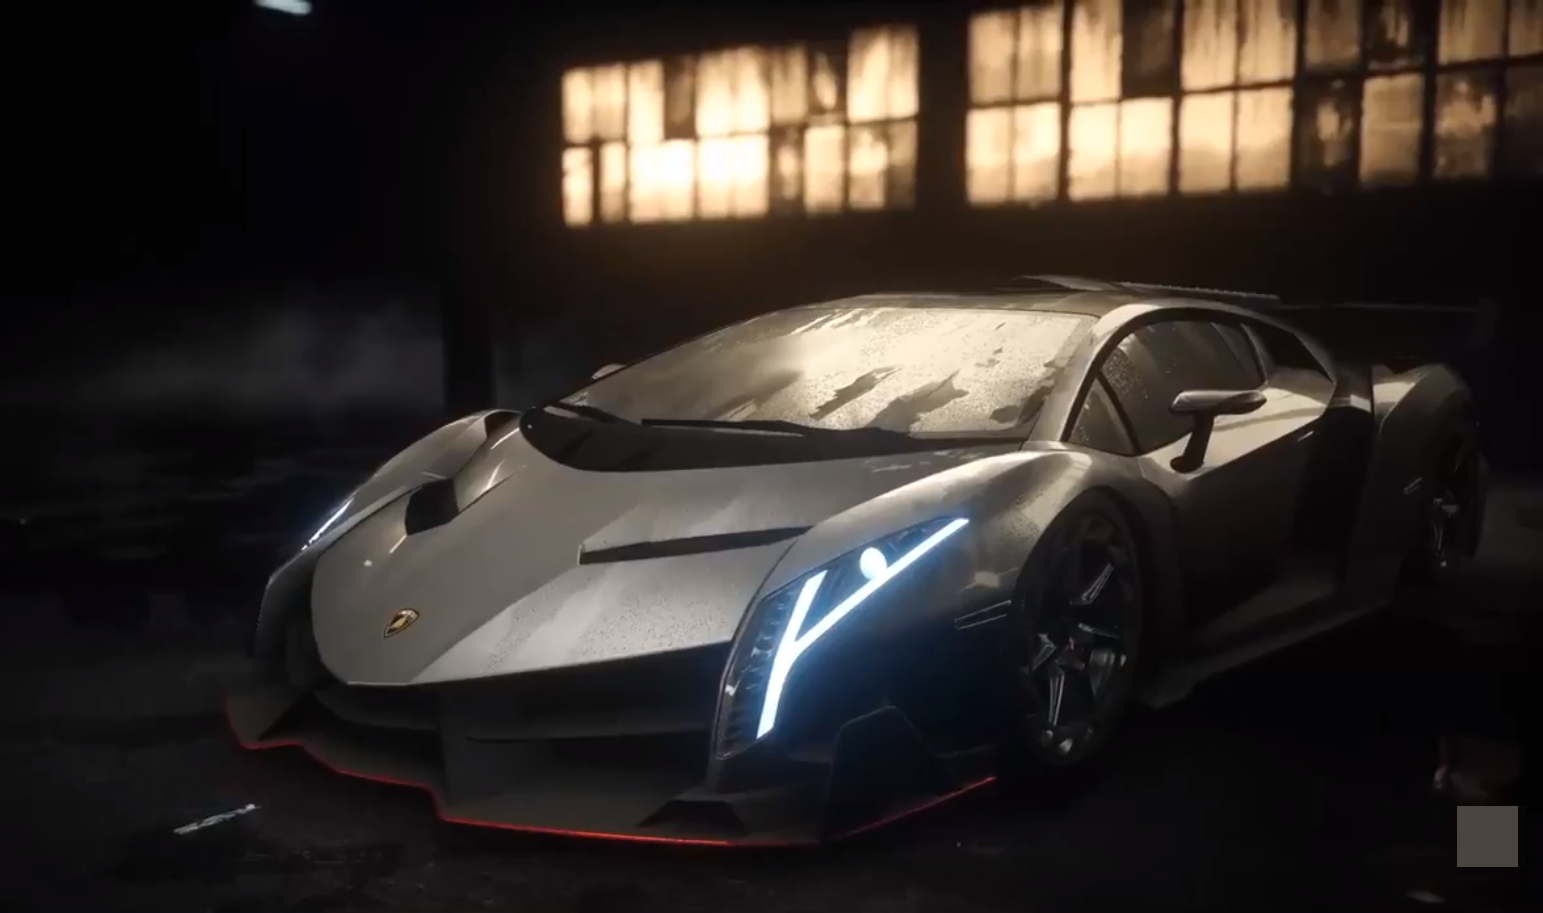 NFS Lamborghini Veneno Wallpaper Engine Free